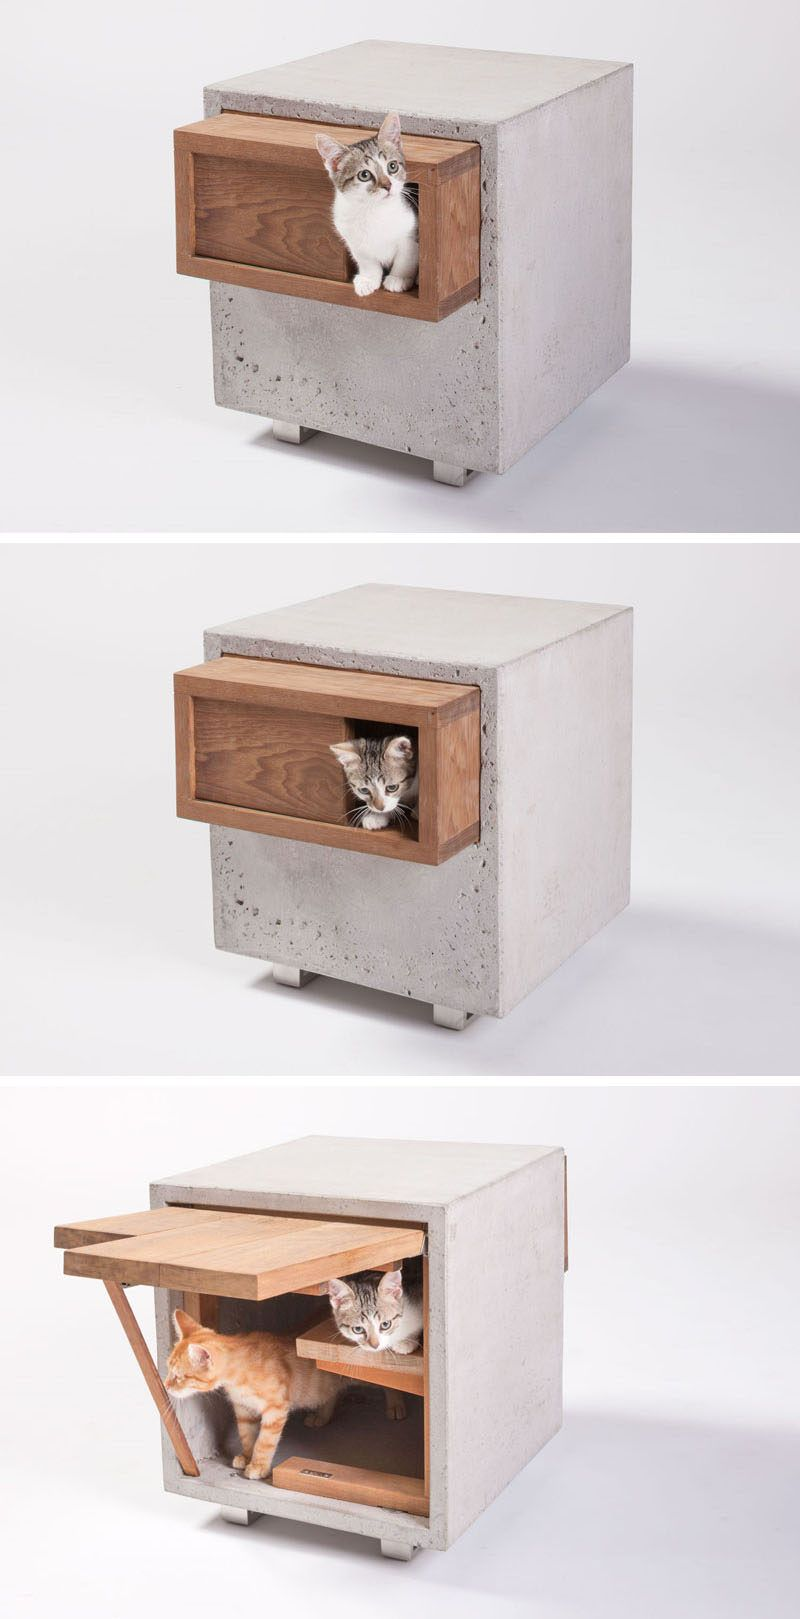 11 Cat Caves That Prove Cat Beds Can Be Stylish This Concrete And Wood Side Cat House Diy Cat Bed Cat Cave